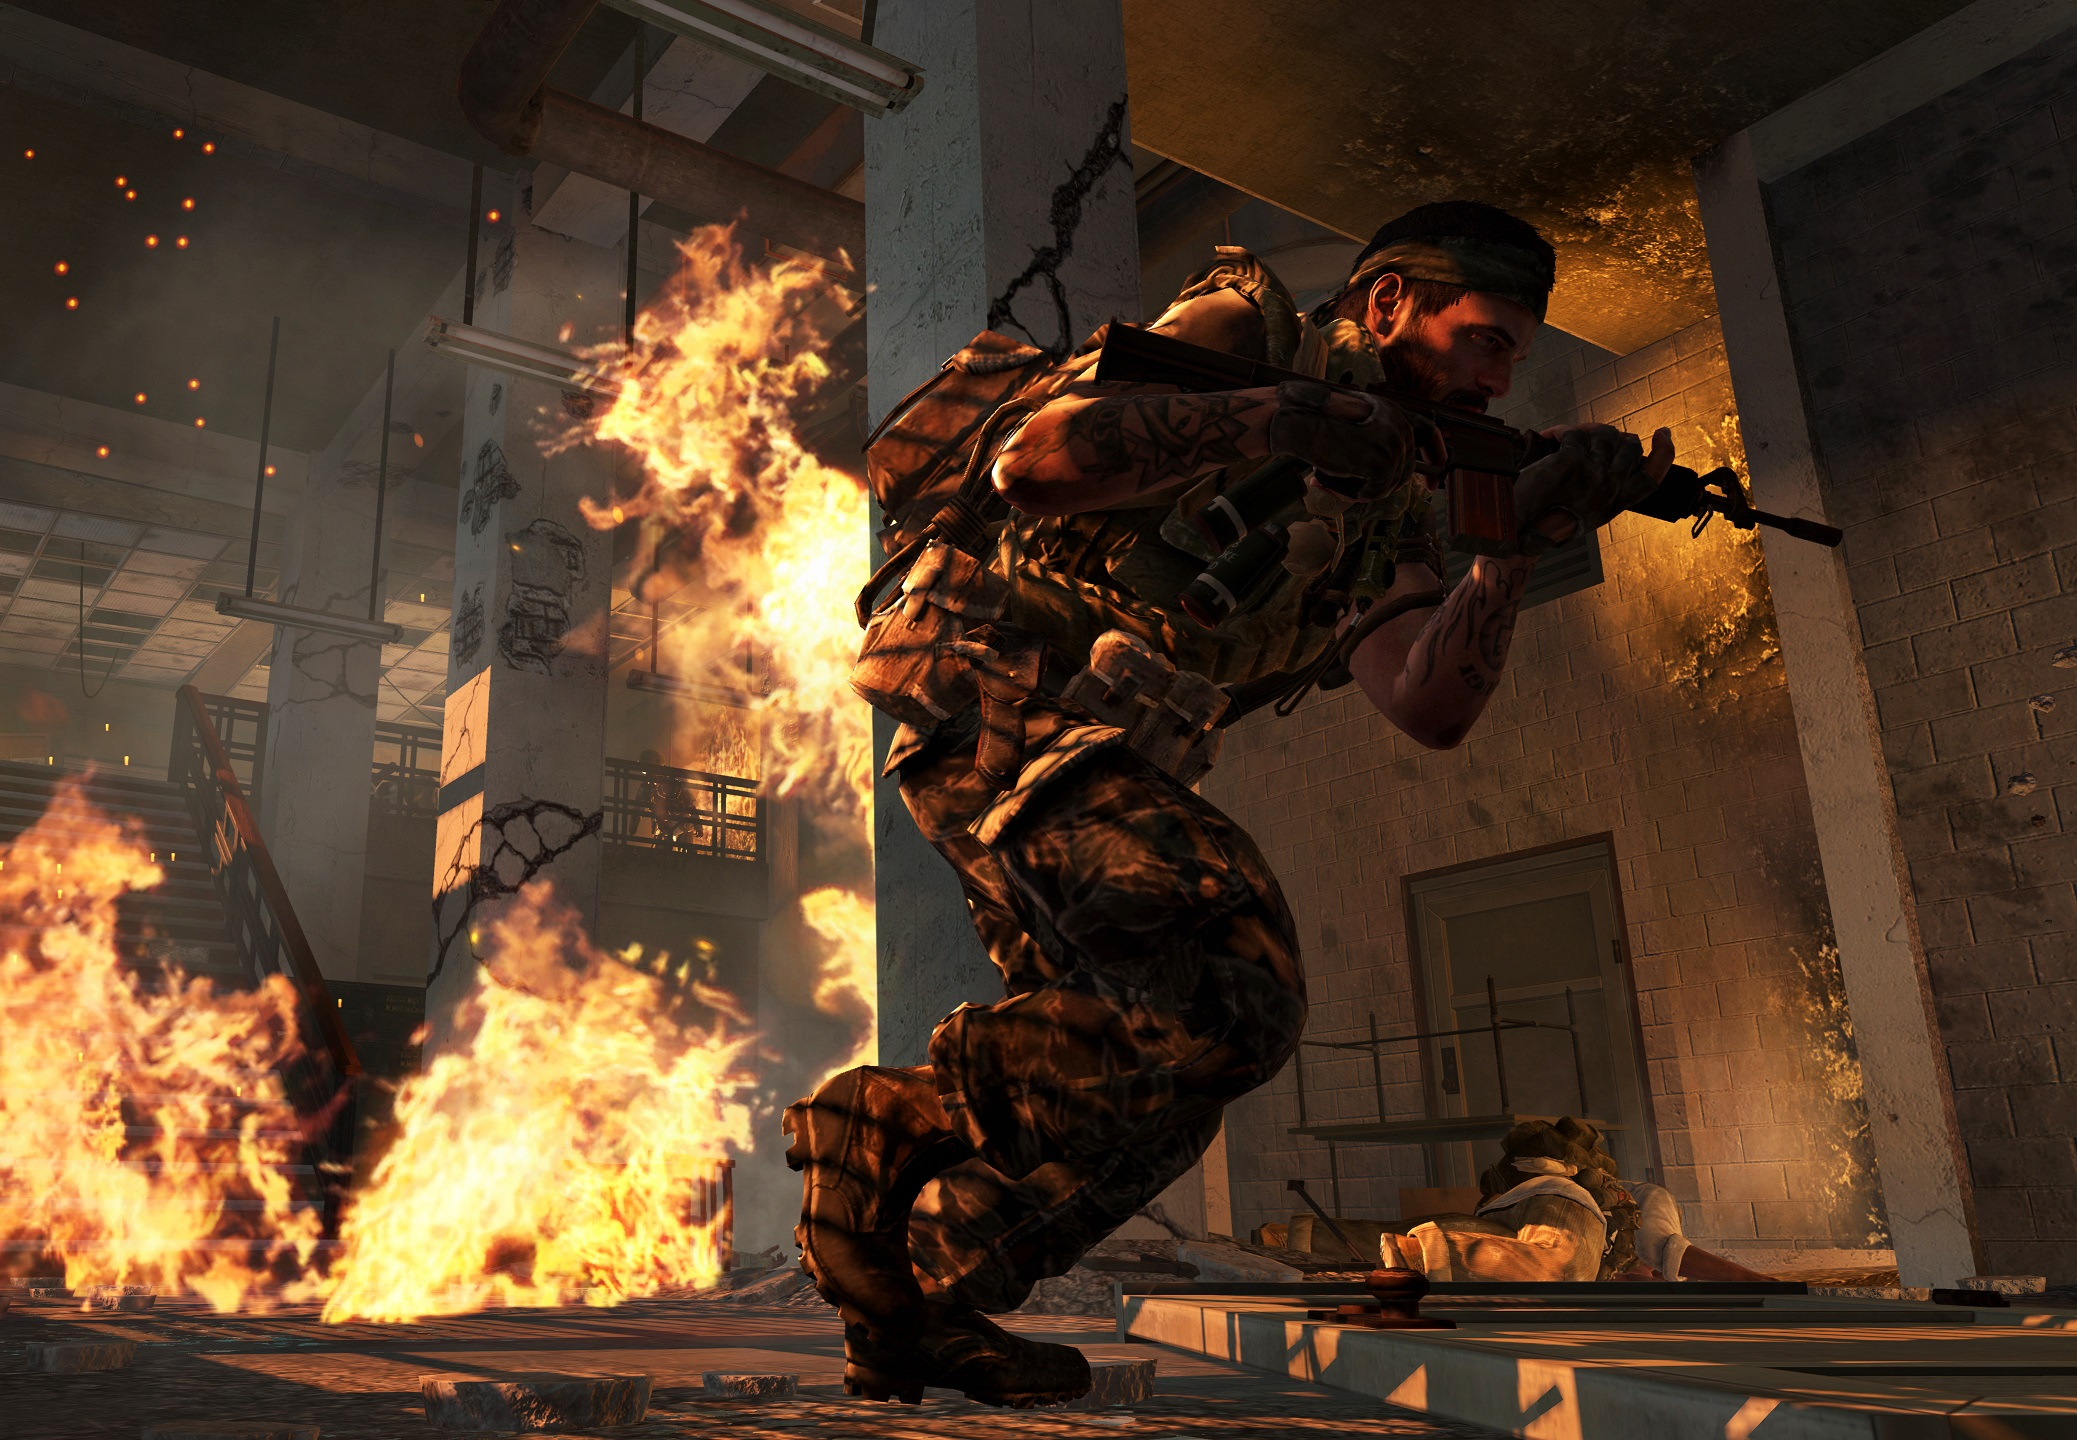 Call of Duty: Black Ops PS3 Cheats - GameRevolution